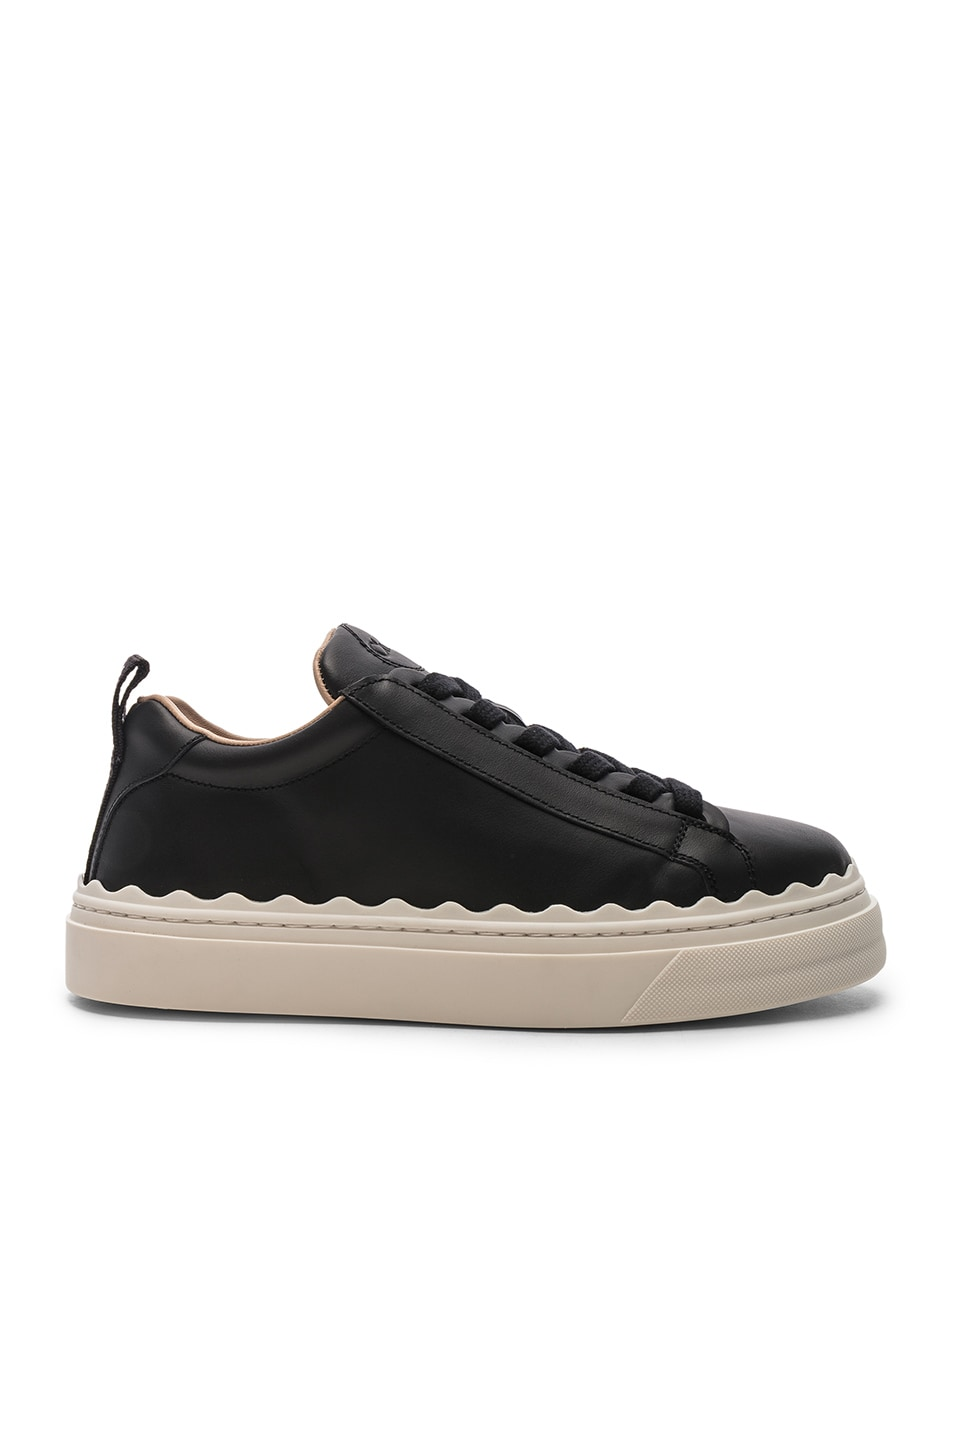 Image 1 of Chloe Low Top Sneakers in Black